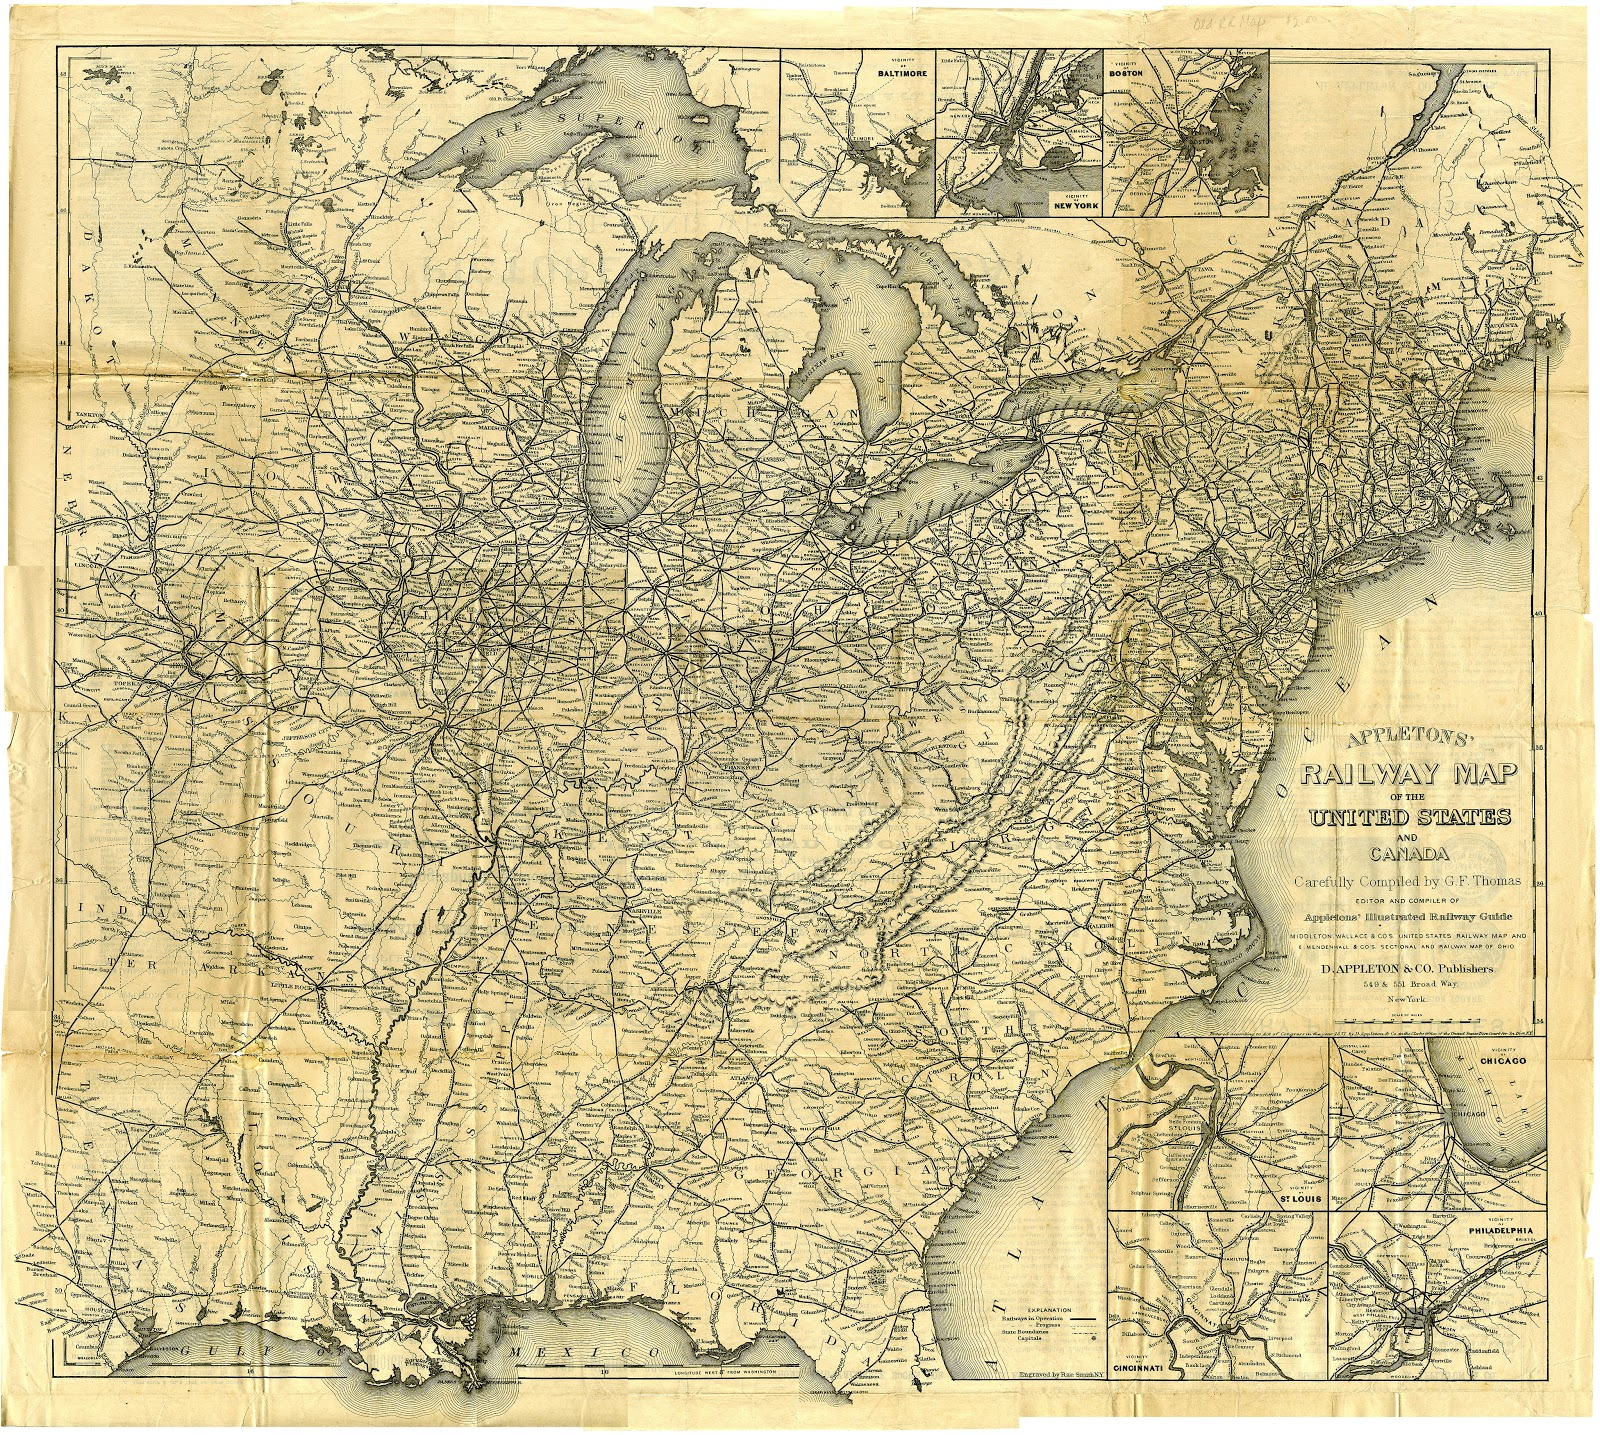 Appleton's Railway Map of the United States and Canada 1871. Flickr upload by William Creswell [Public domain or CC BY 2.0], via Wikimedia Commons